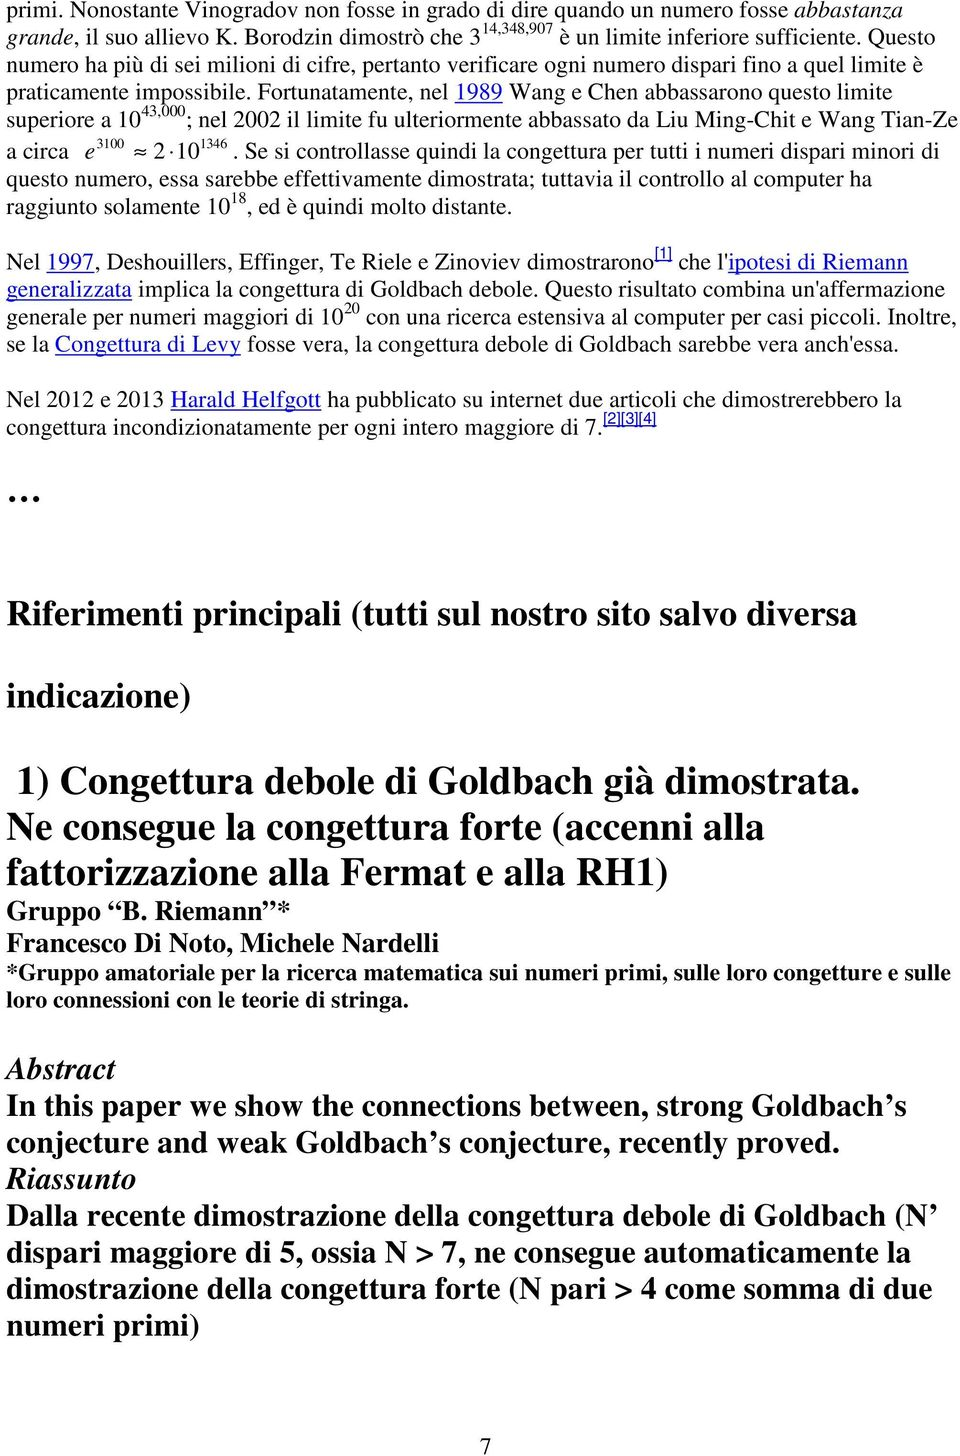 pdf strong induction and the goldbach conjecture